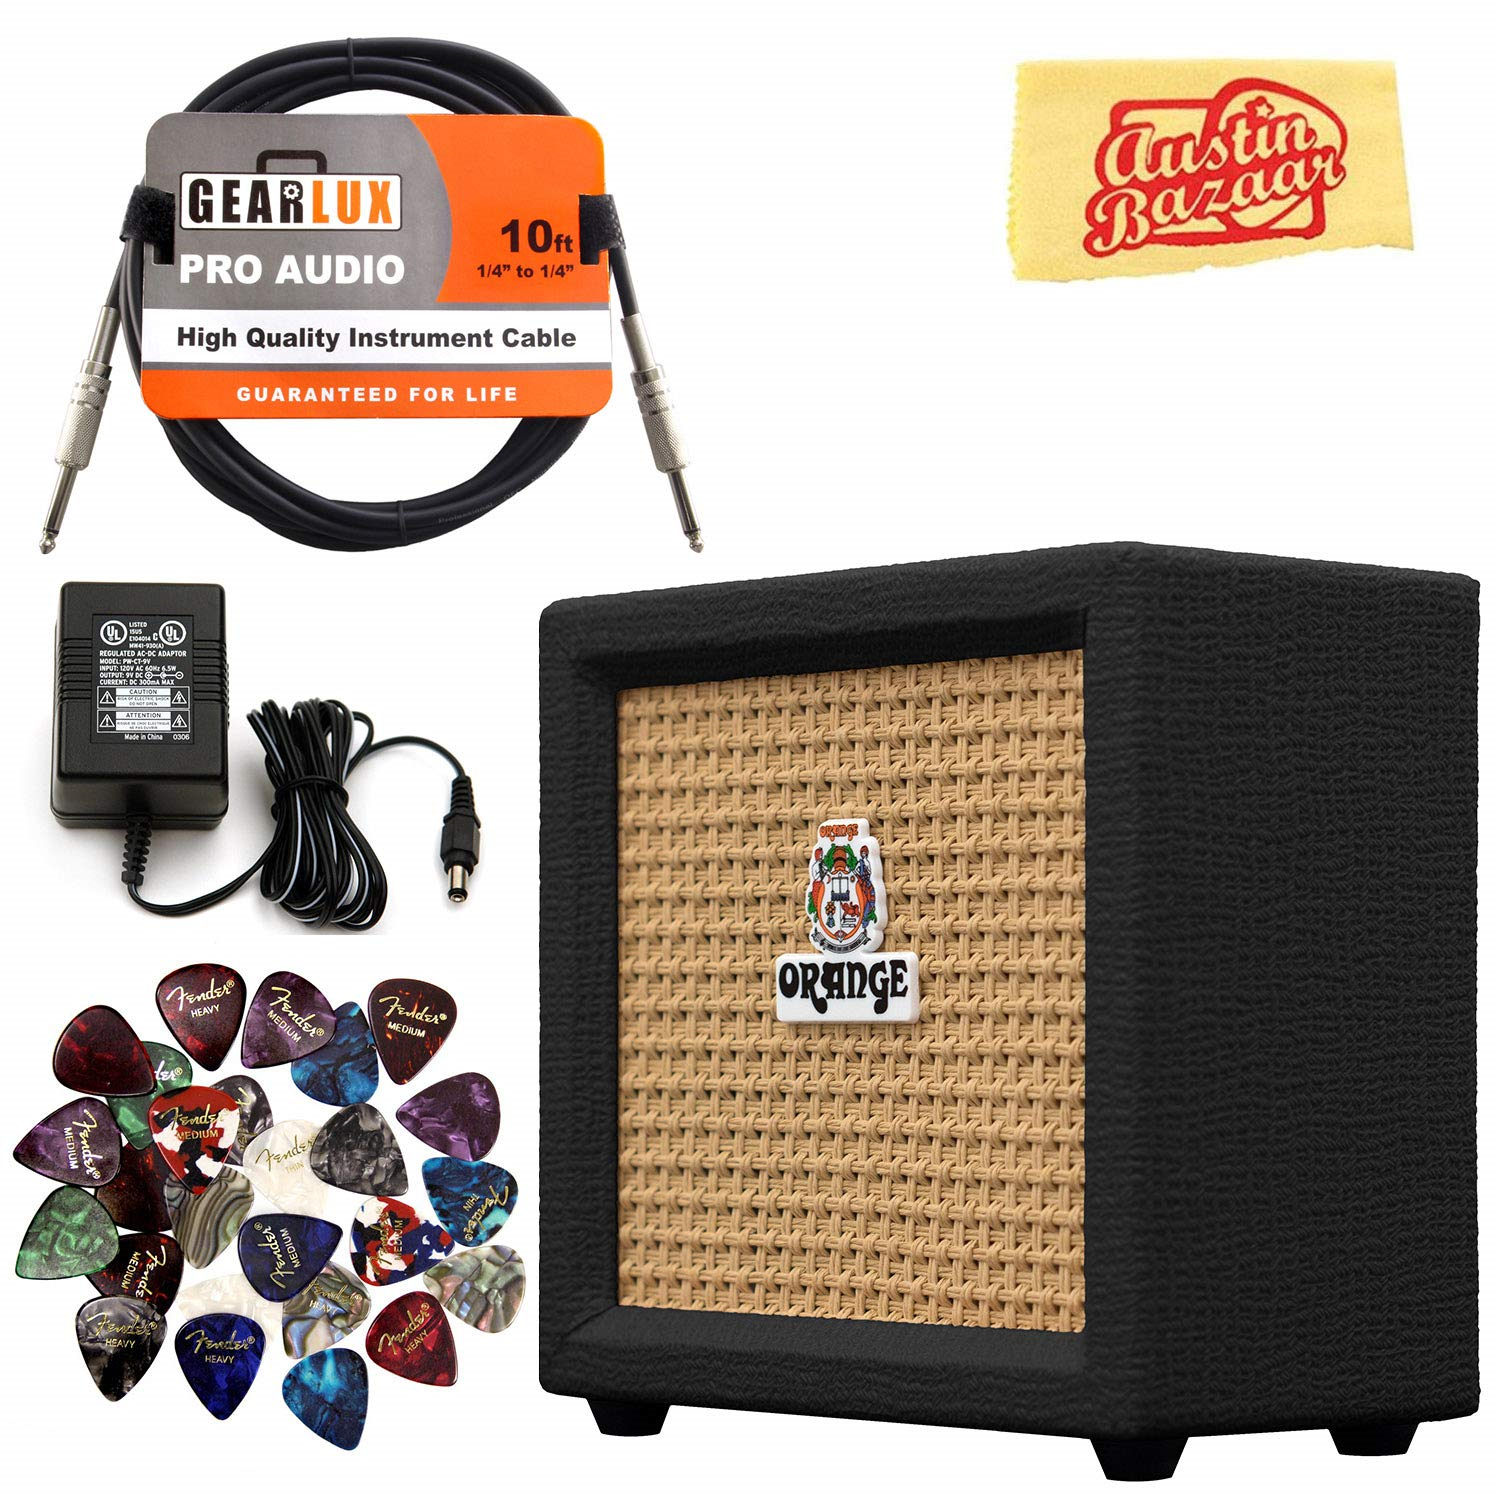 Contents of The Orange Crush Black Bundle Mini Amplifier package